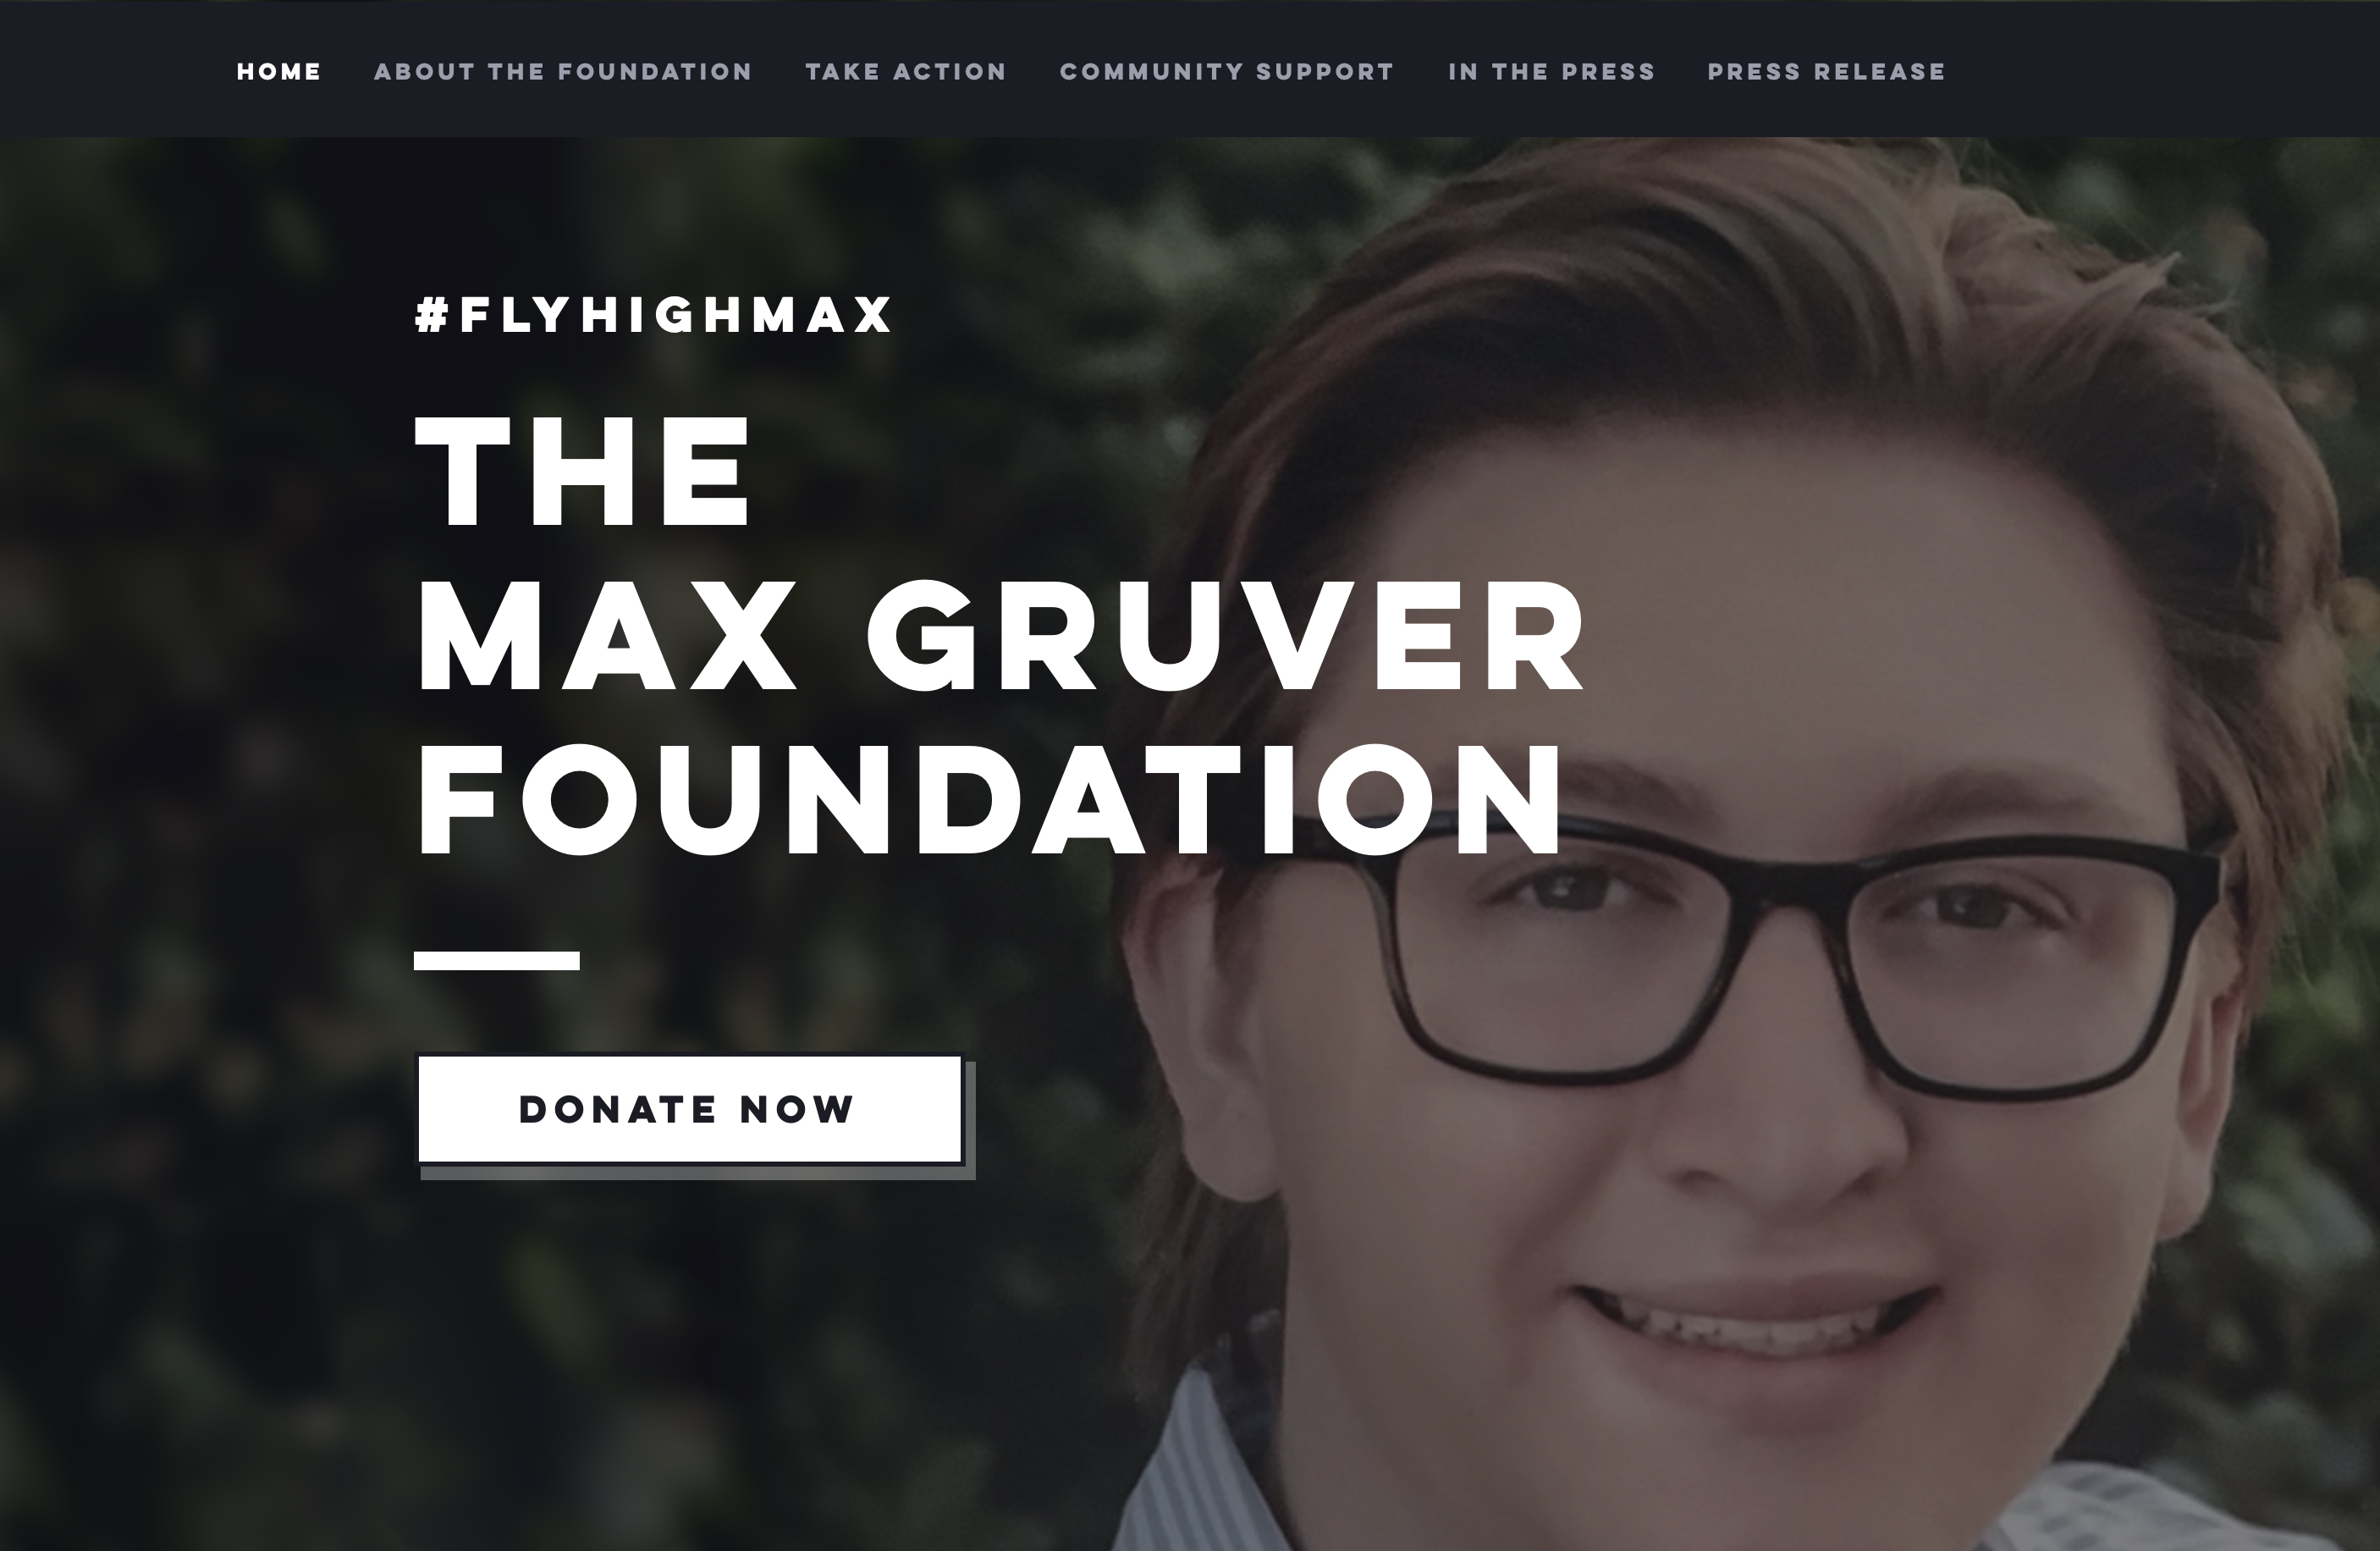 The Max Gruver Foundation